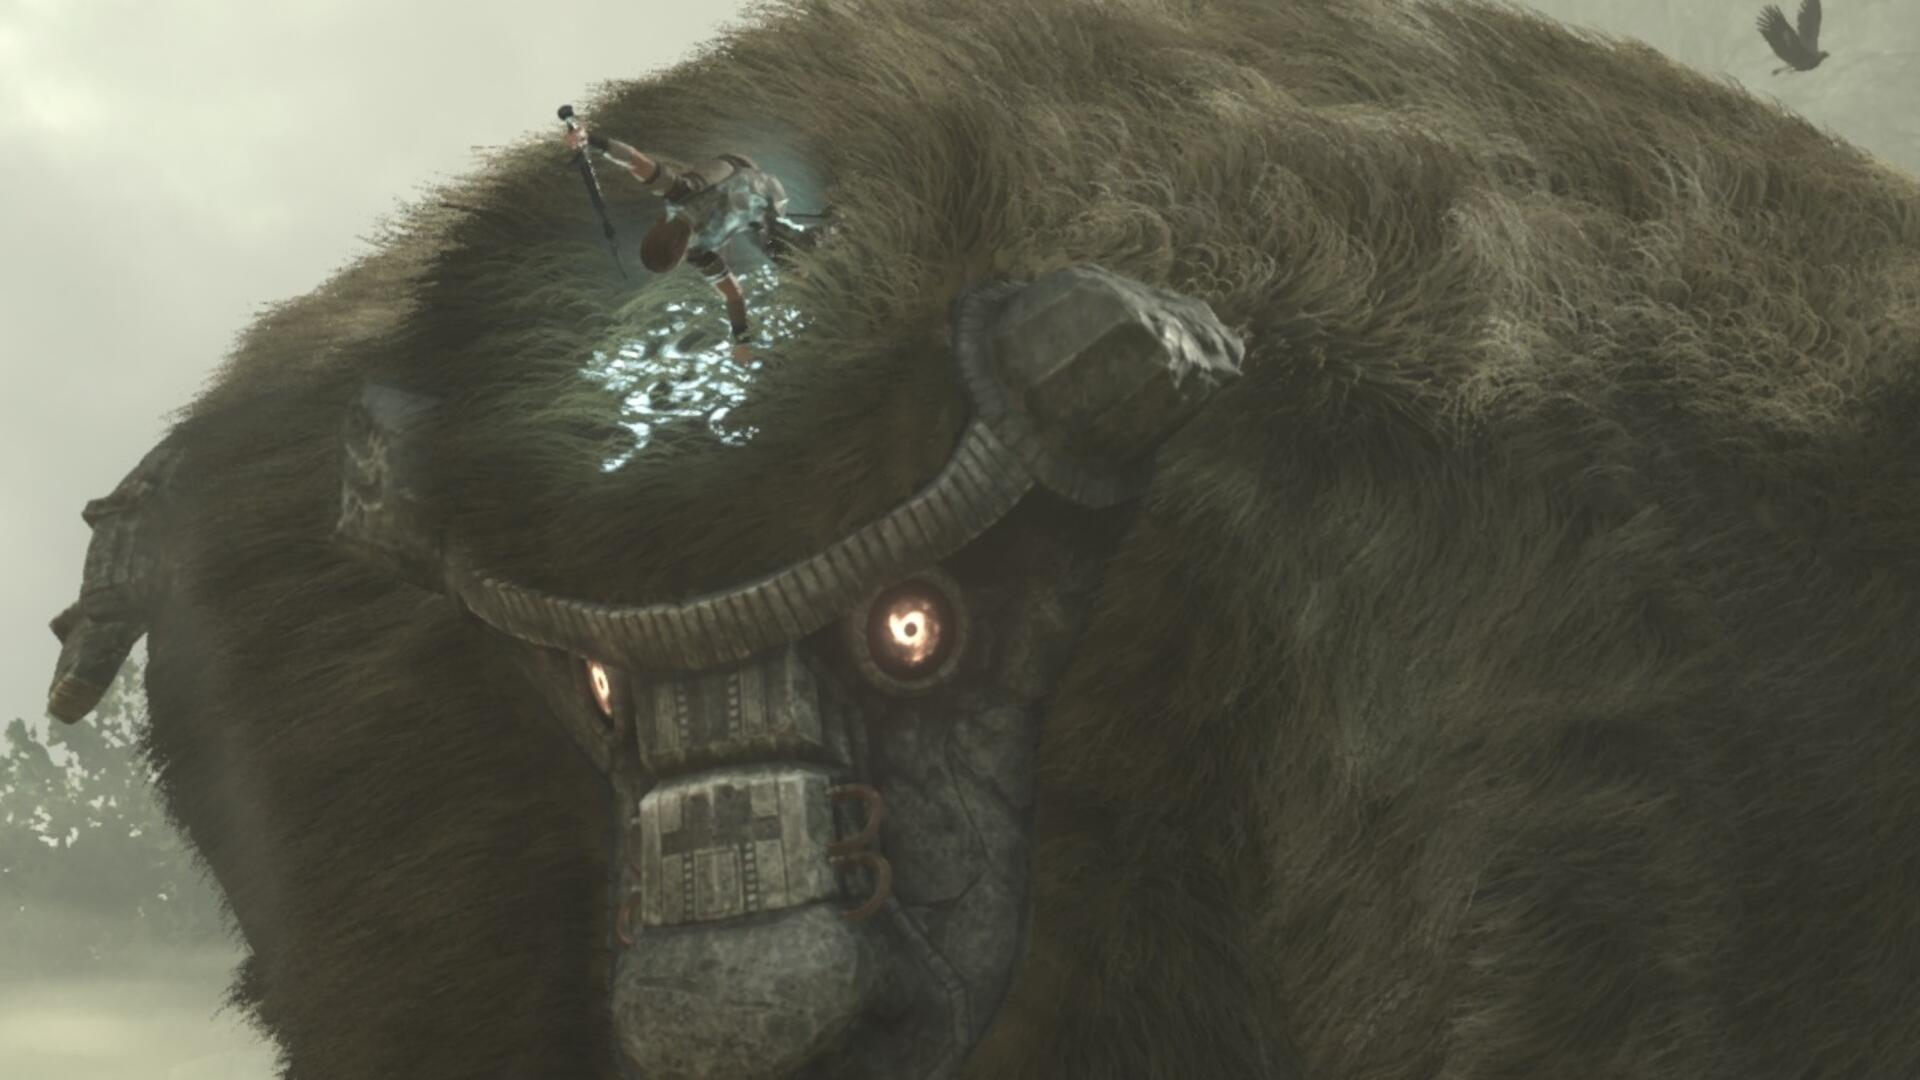 Shadow of the Colossus PS4 Remake Reviews, Release Date, Tech Analysis, Trailers, Gameplay, Improved Graphics, Comparison Shots - Everything we Know